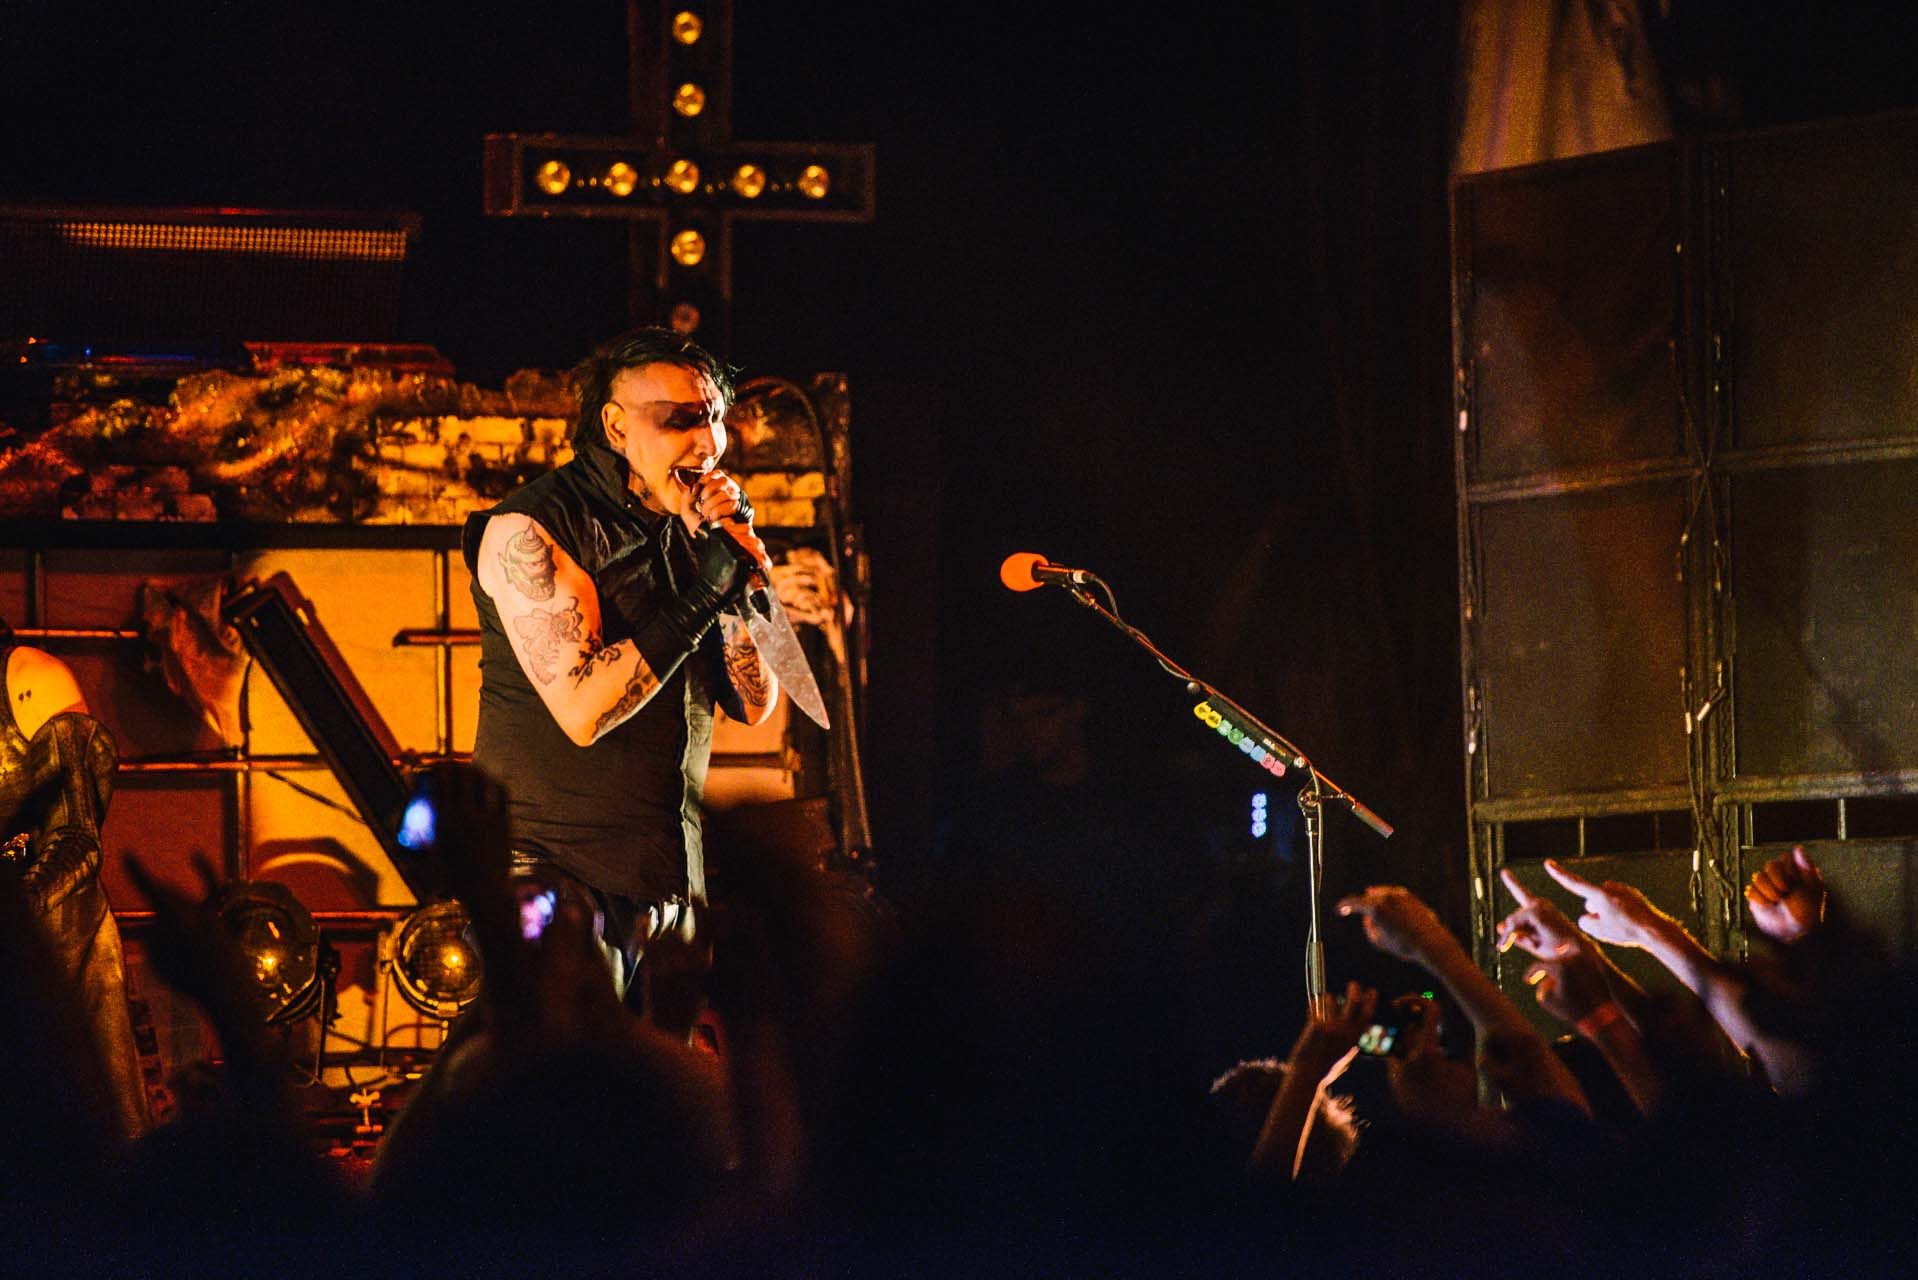 marilyn_manson_live_egyptian_room_indianapolis_2013-39